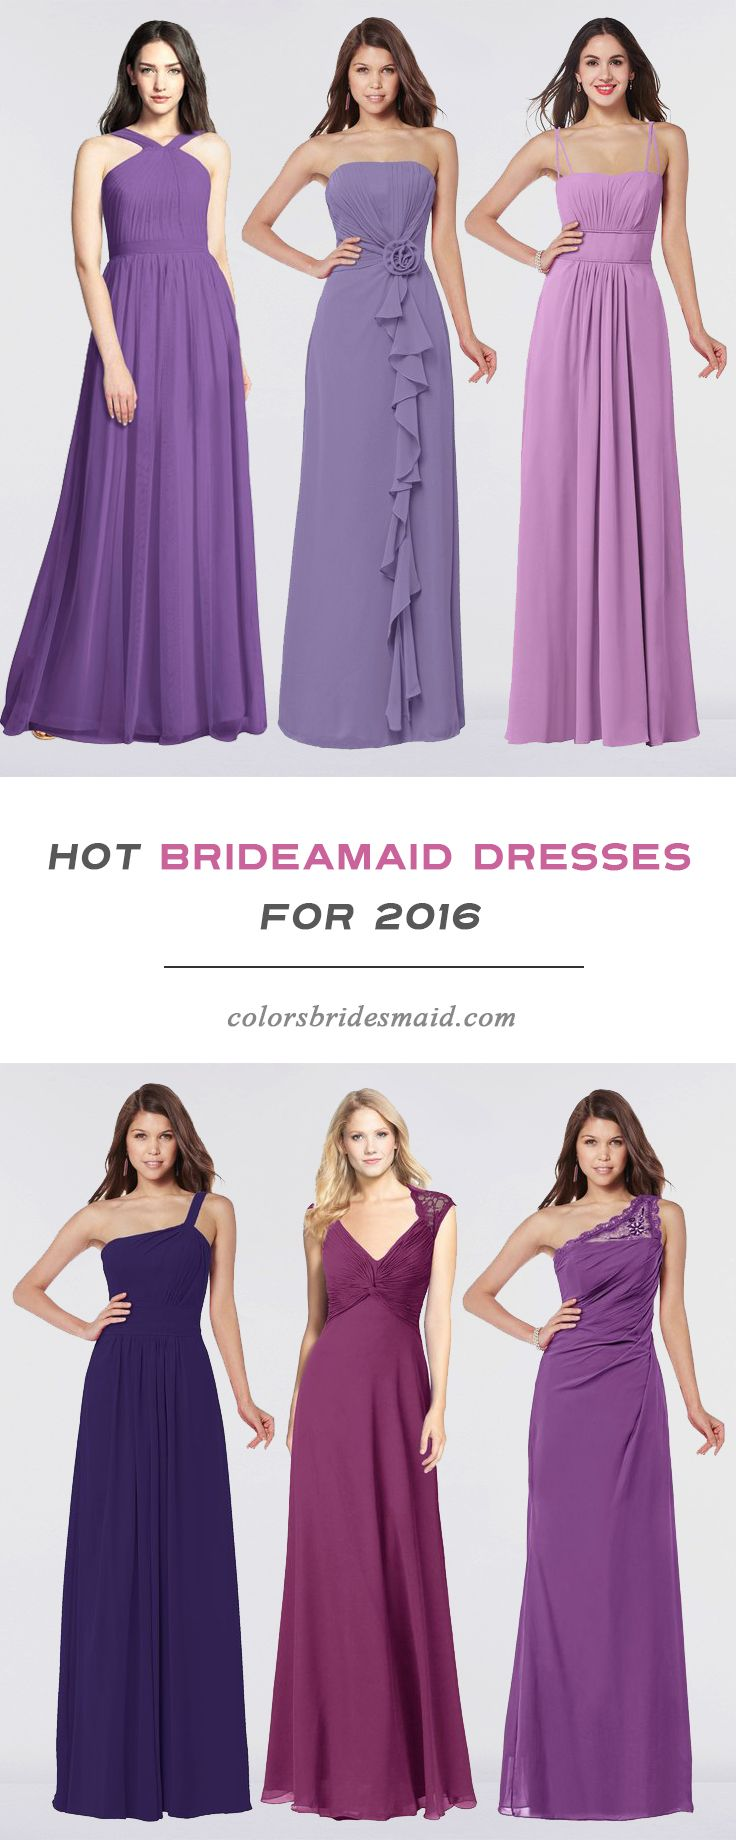 Tired Of The Same Color For Bridesmaid Dresses? Do you wanna try ...